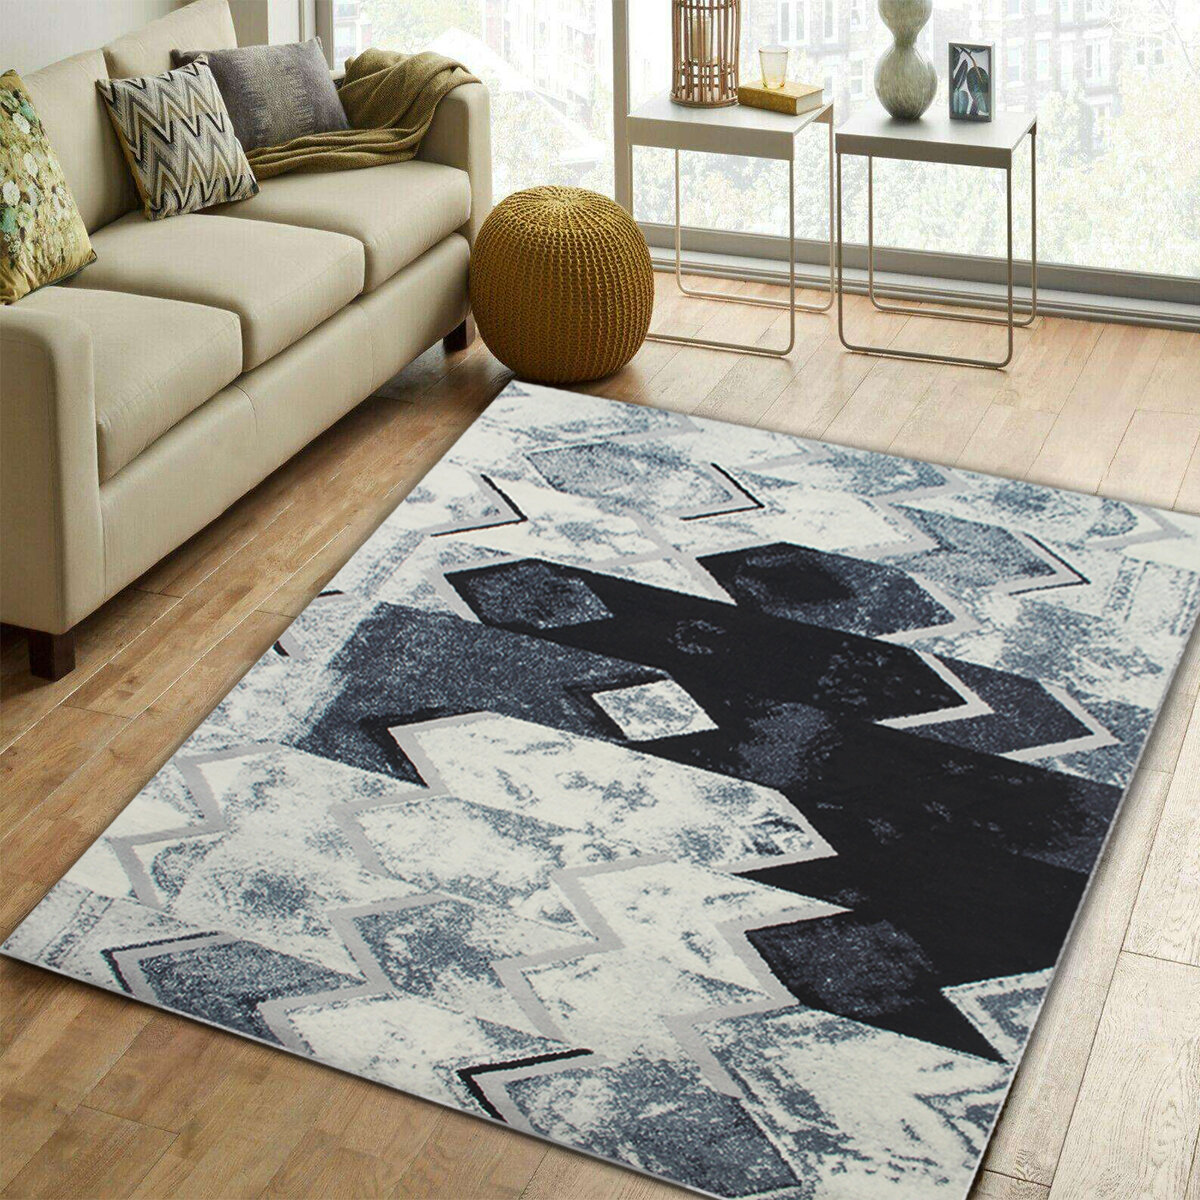 Abstract_Modern_Black_Grey_Silver_Floor_Carpet_Rug_Mat_For_Livingroom_Bedroom